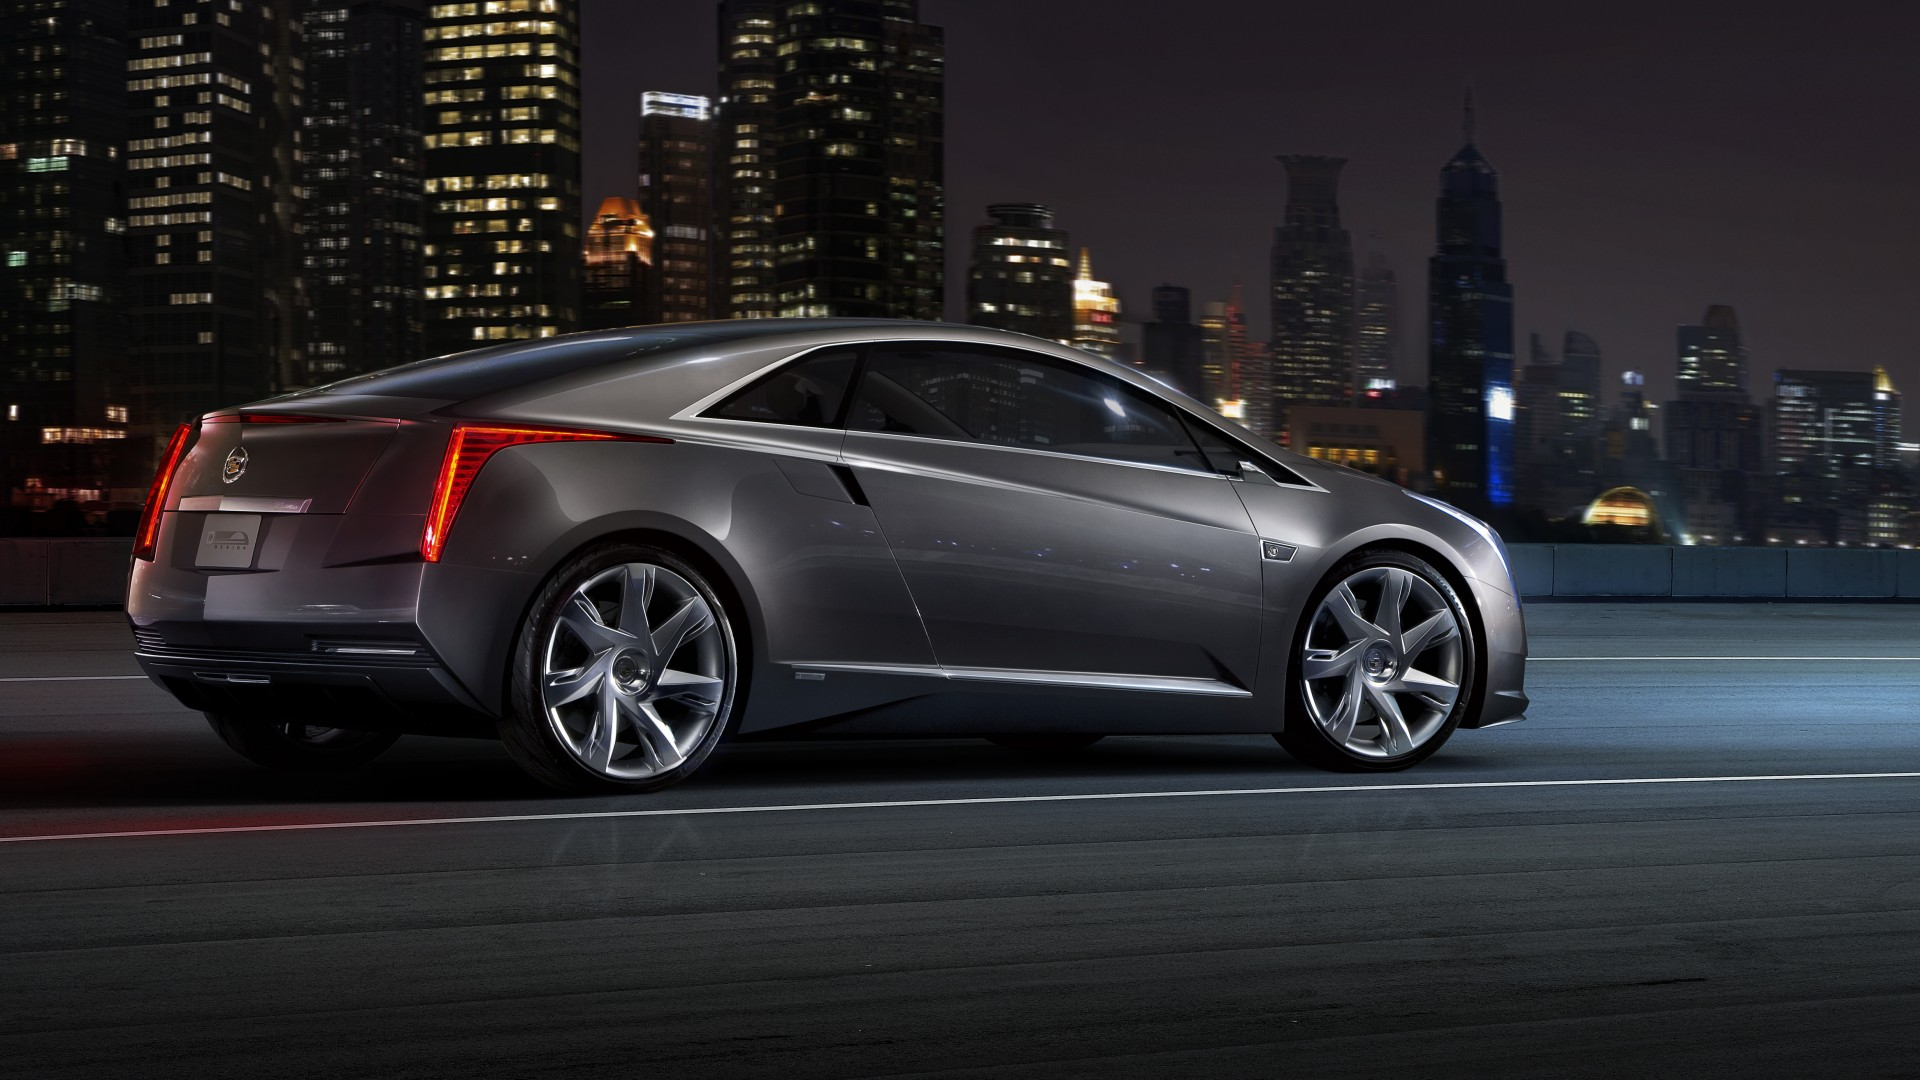 wallpaper cadillac converj hybrid concept luxury cars cadillac elr silver side cars. Black Bedroom Furniture Sets. Home Design Ideas